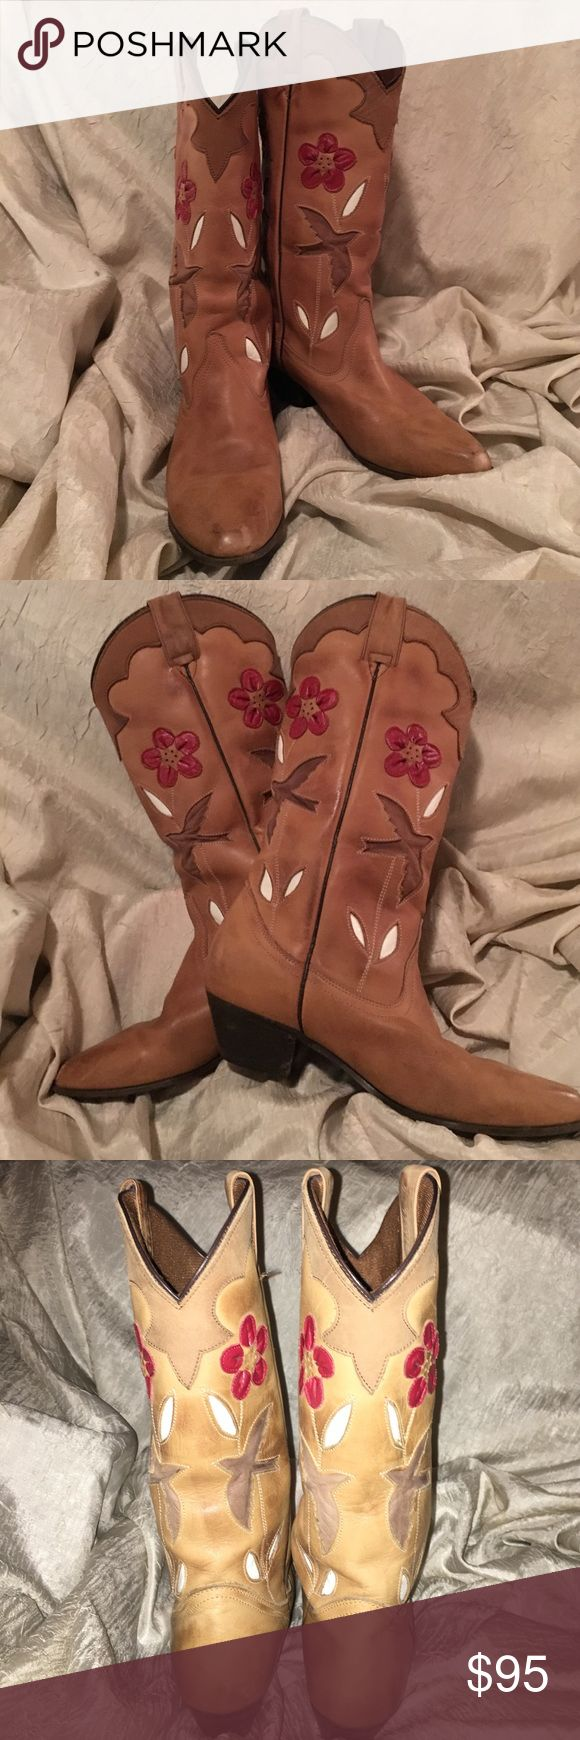 "Oak Tree Farm Western Boots Made in Mexico Oak Tree Farm Western Boots Made in Mexico. Scalloped with Beautiful Red Flowers and Birds in Flight. Shaft measures approx. 13"". Circumference approx. 13. Oak Tree Farms  Shoes Winter & Rain Boots"